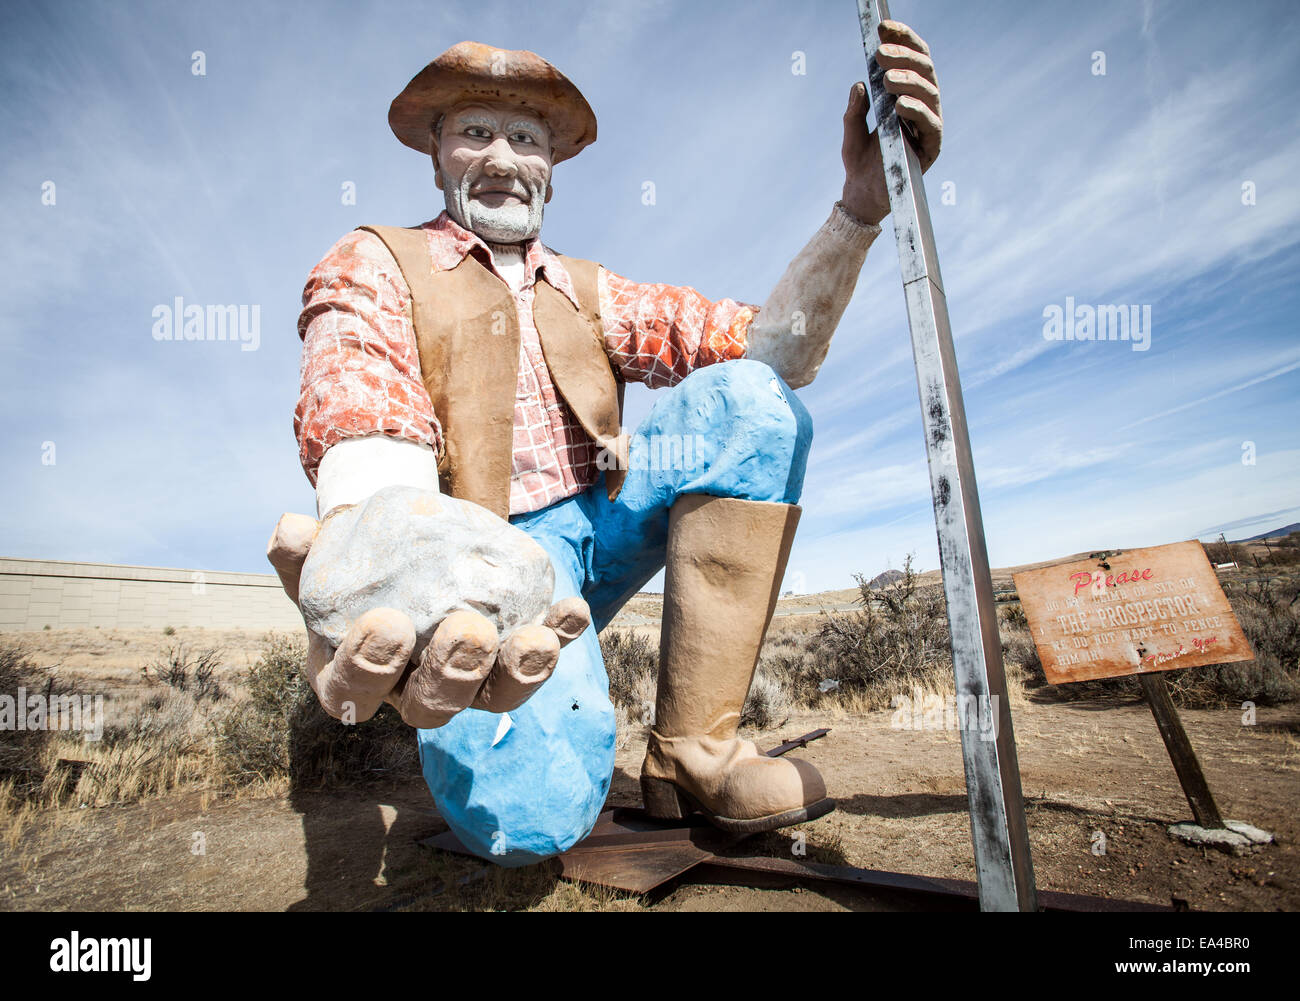 The giant mining prospector in Washoe Valley, Nevada. - Stock Image